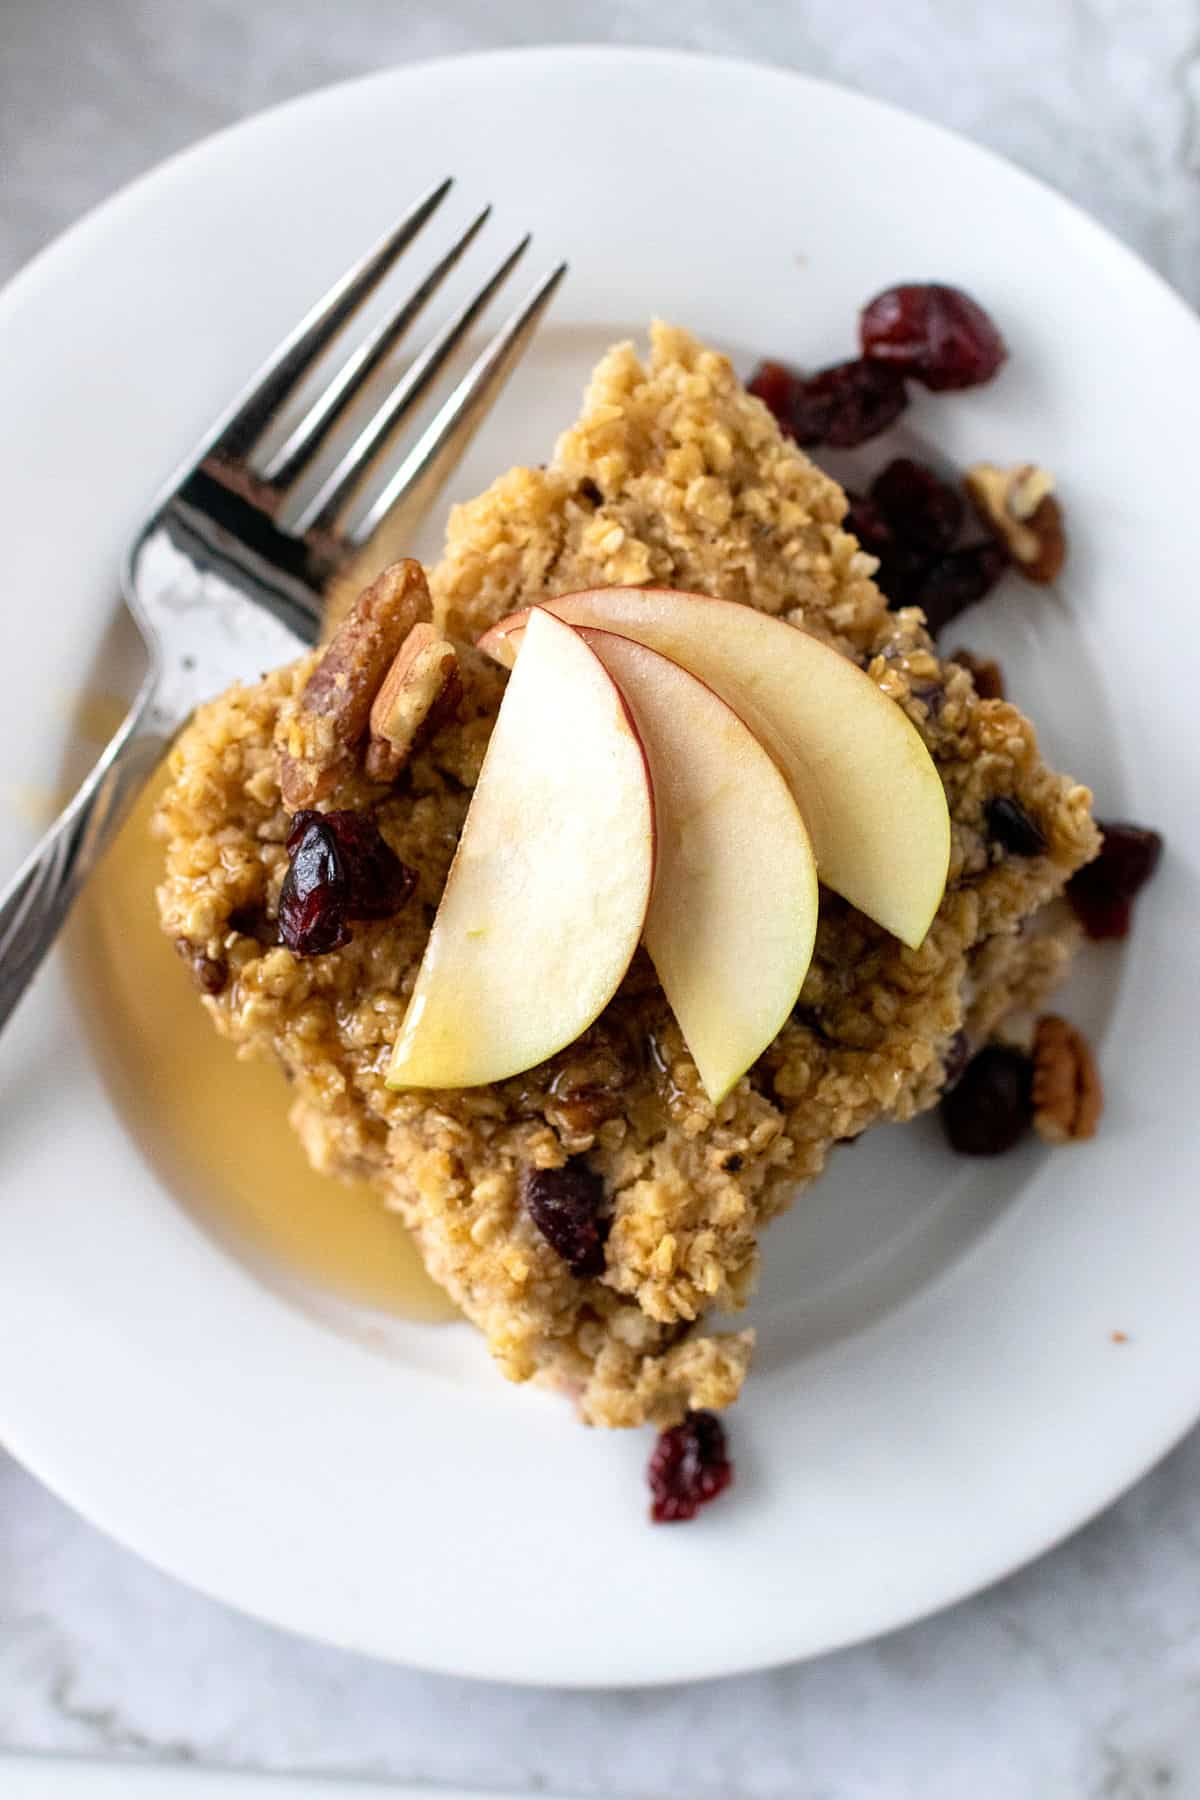 A white plate with a slice of baked oatmeal with pecans, cranberries and apples.